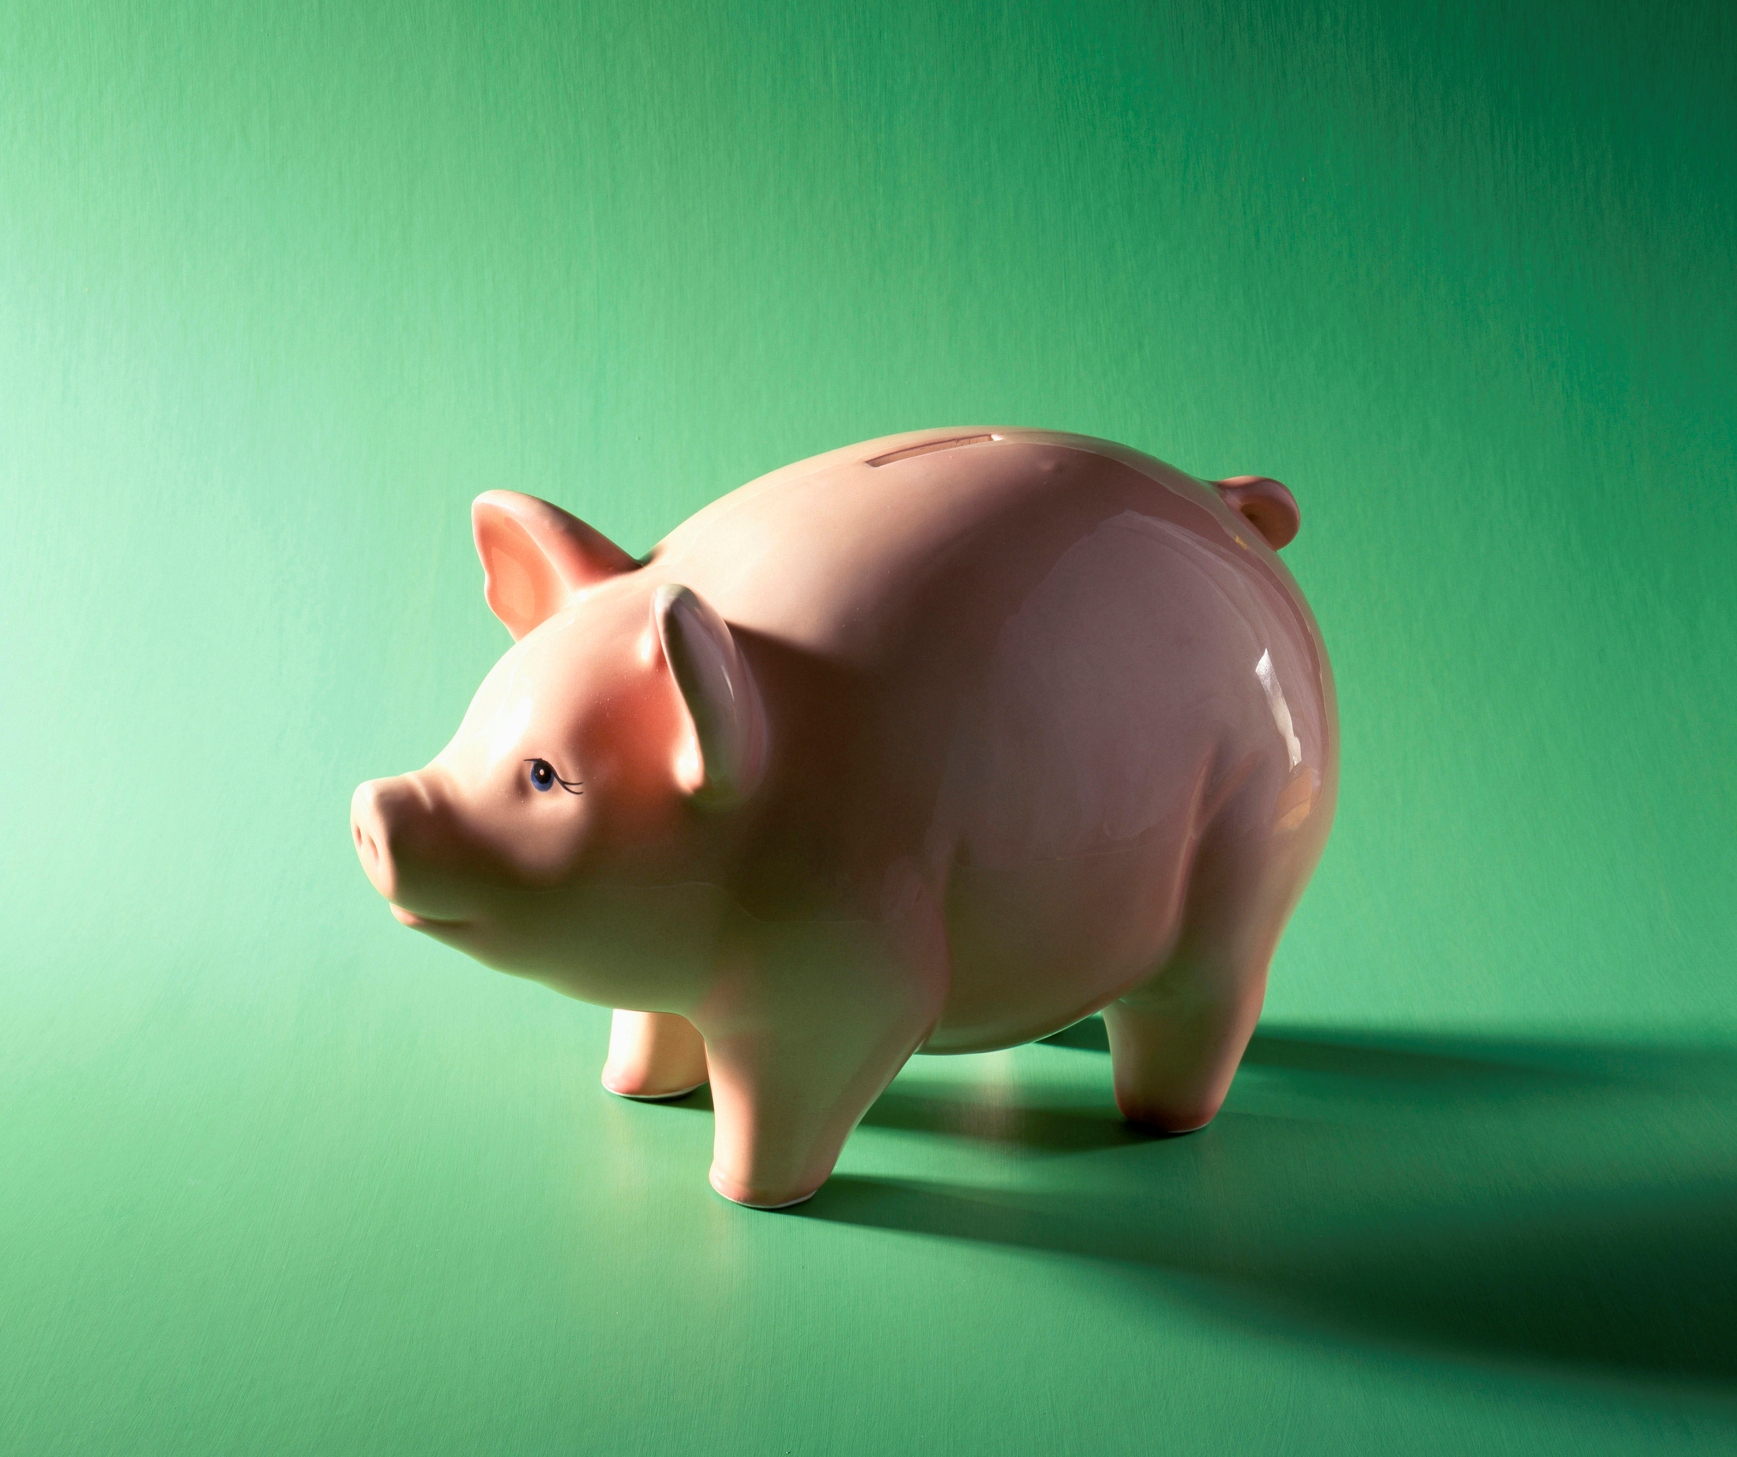 Close-up of a piggy bank